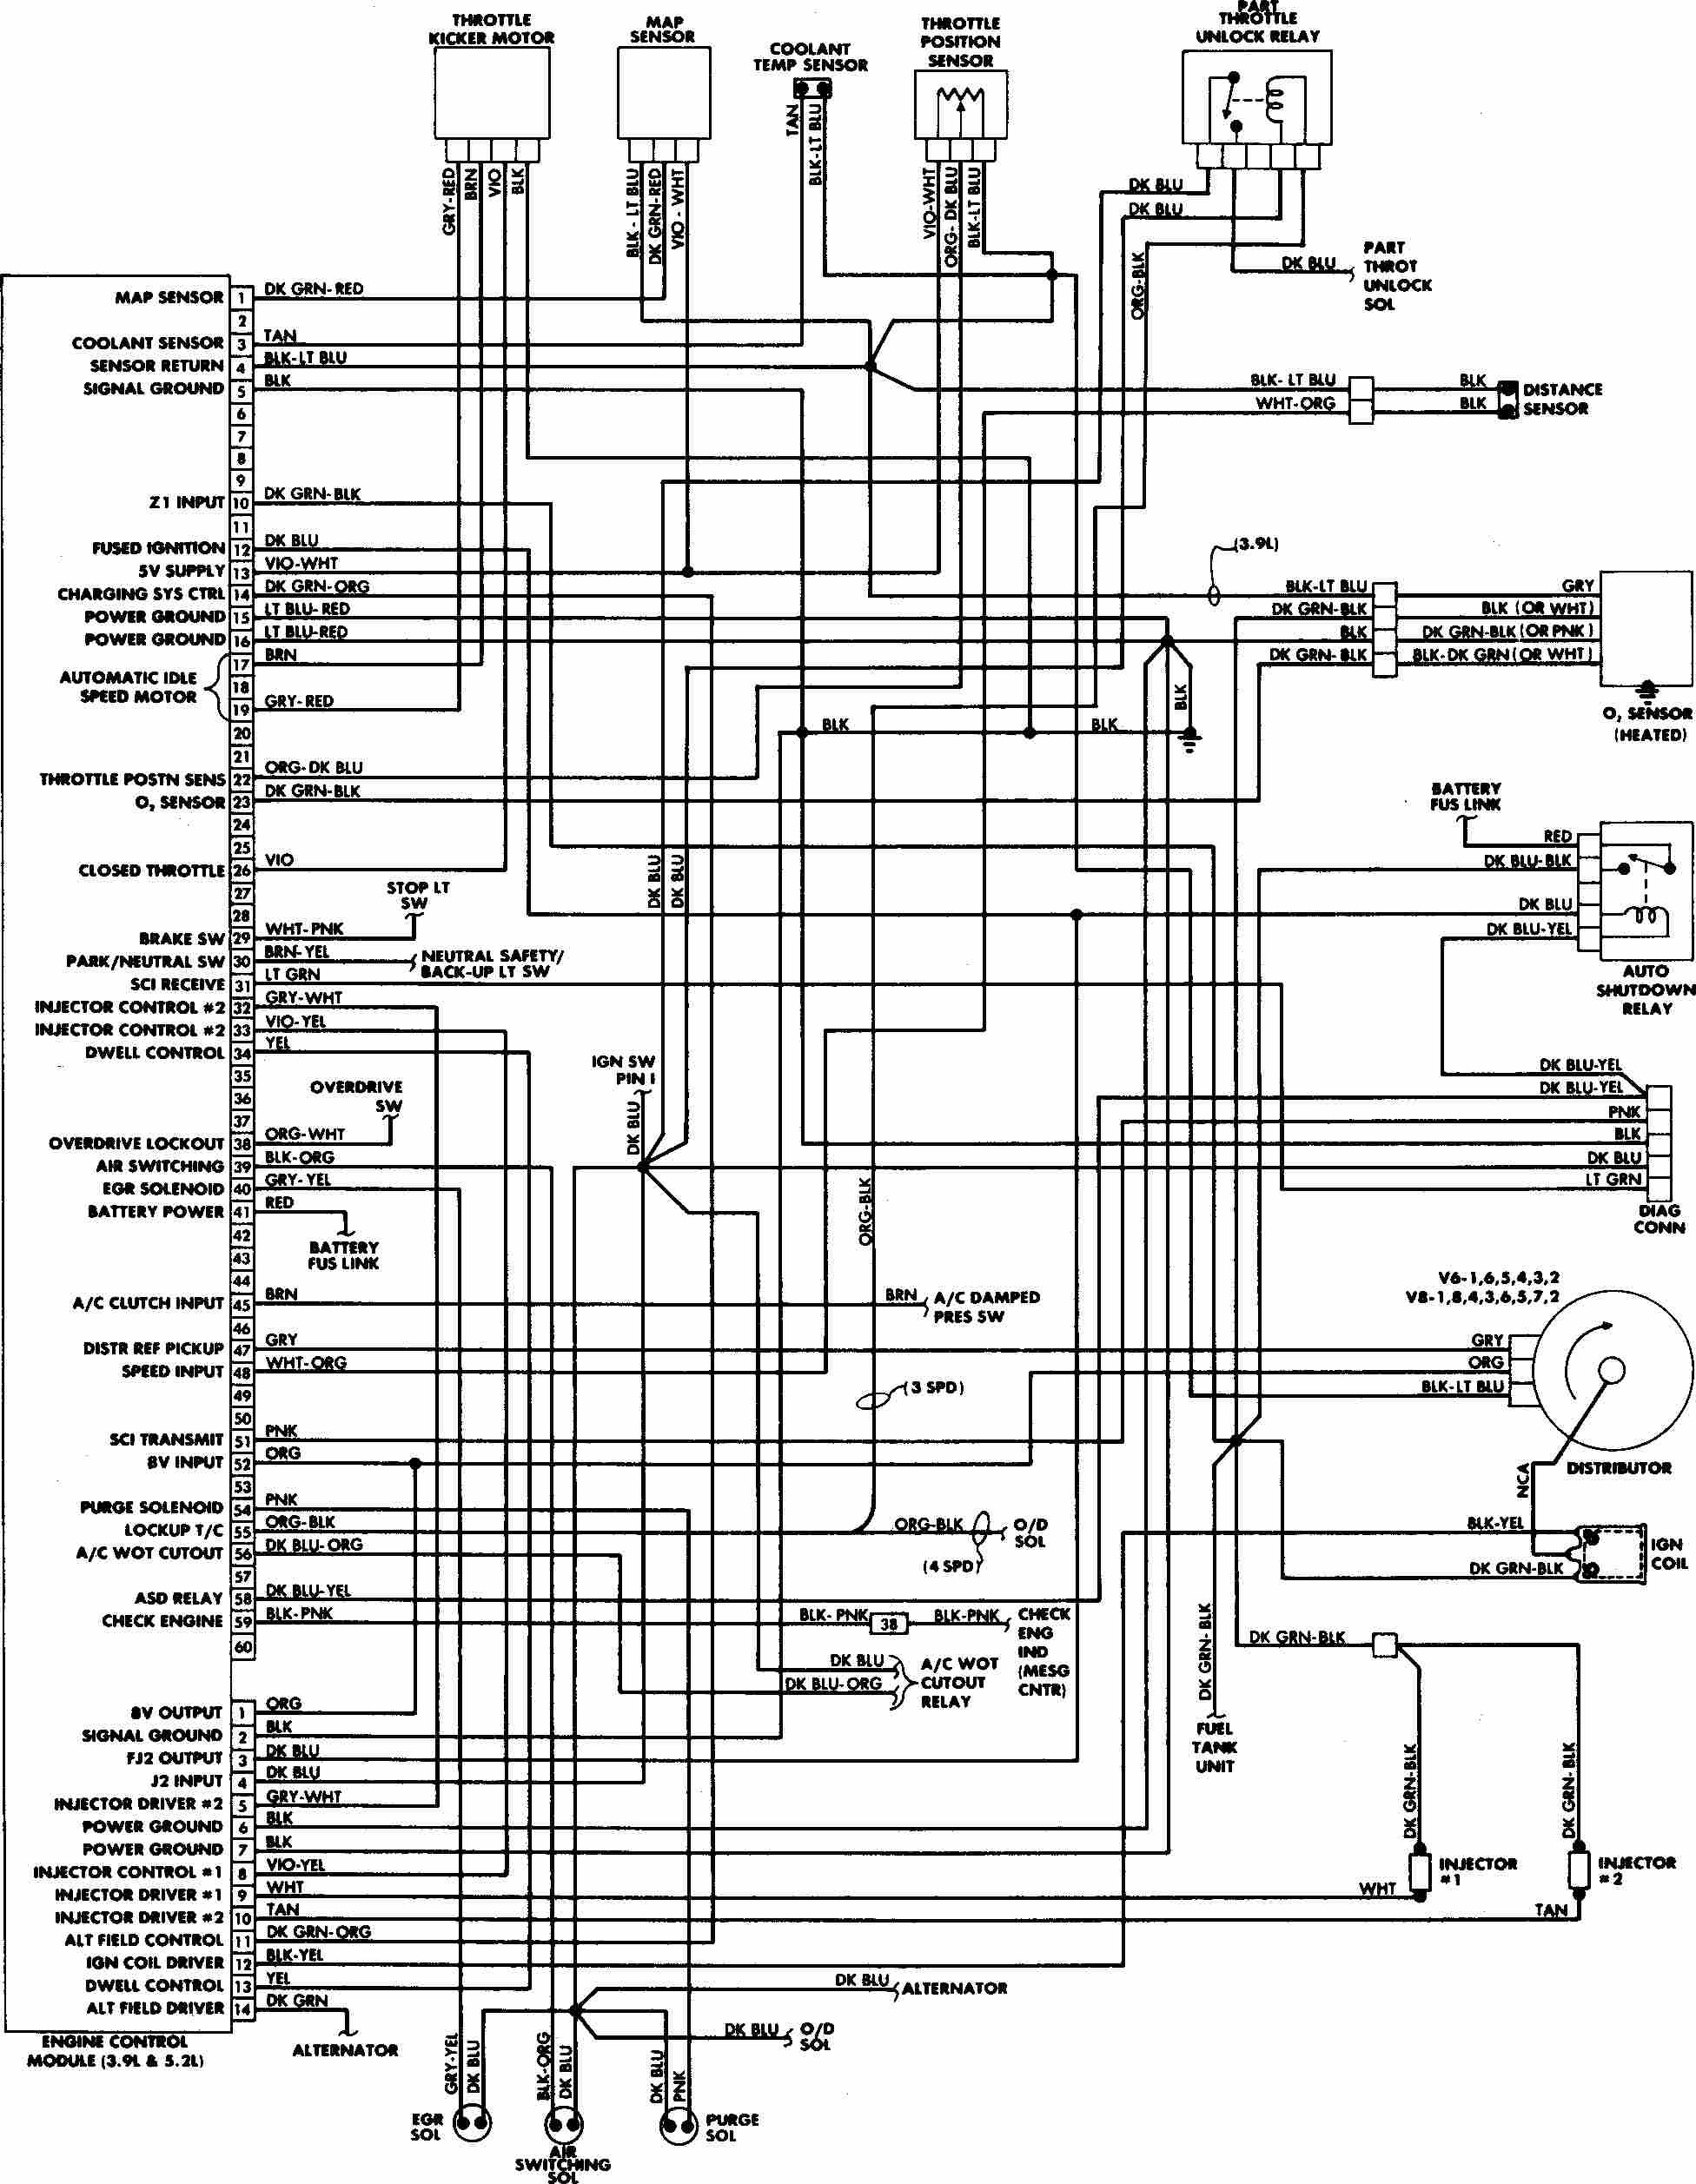 1991 Jeep Wrangler Fuse Box Diagram. Jeep. Auto Wiring Diagram